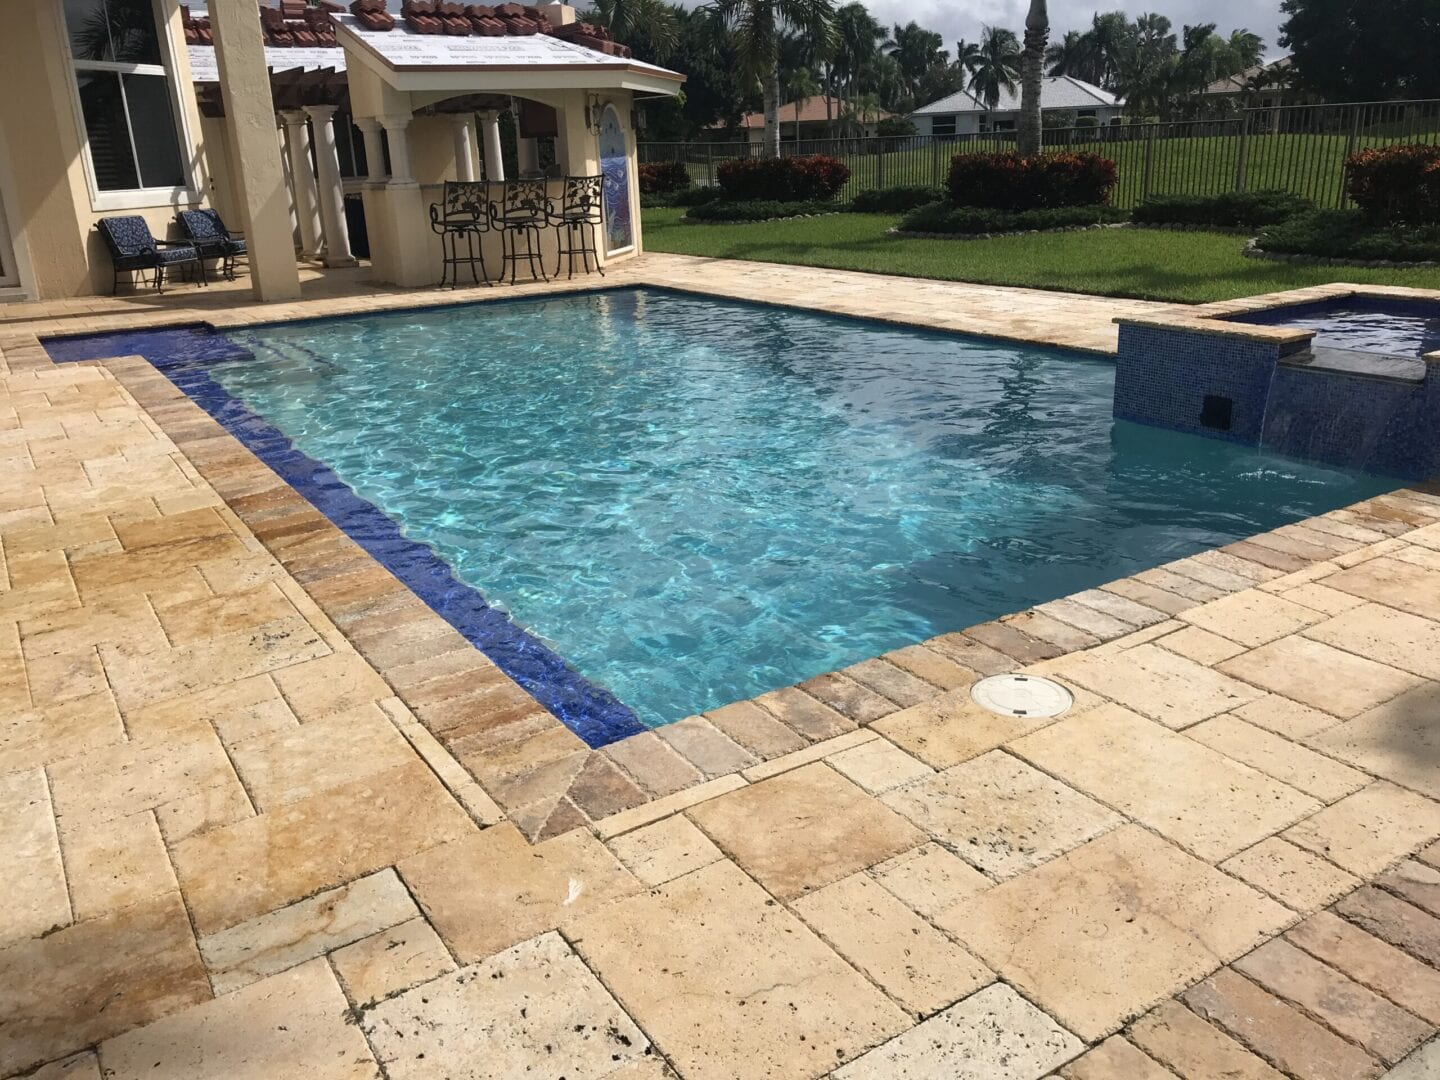 Pool in the backyard of a beige house (slanted view)